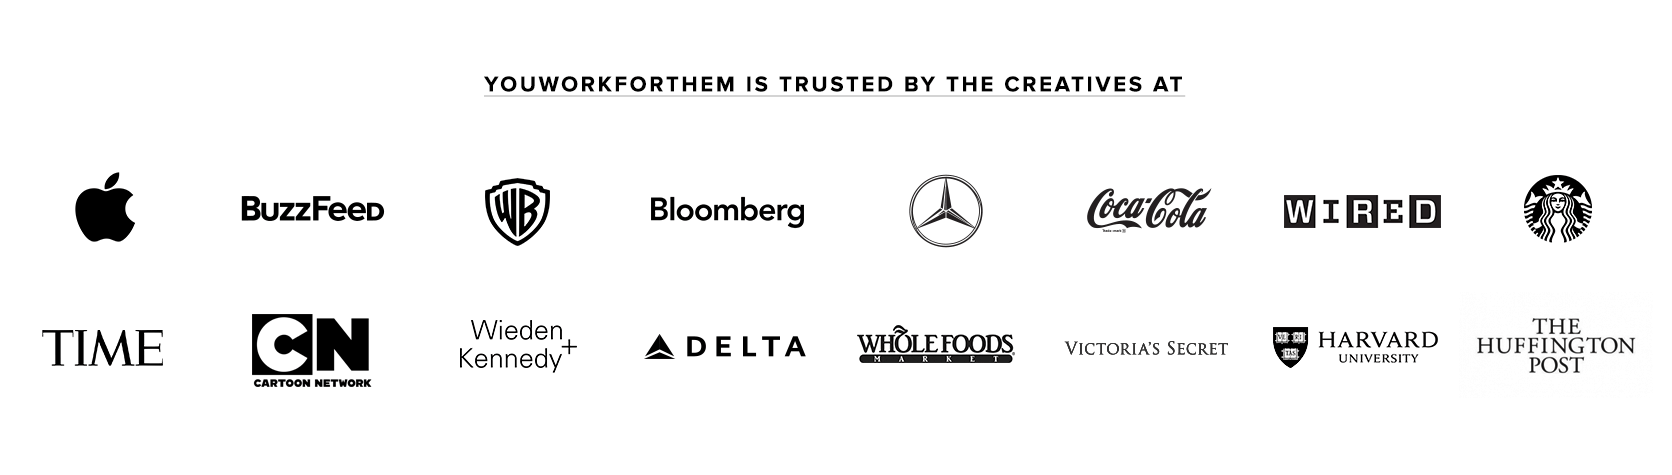 YouWorkThem is trusted buy creatives at